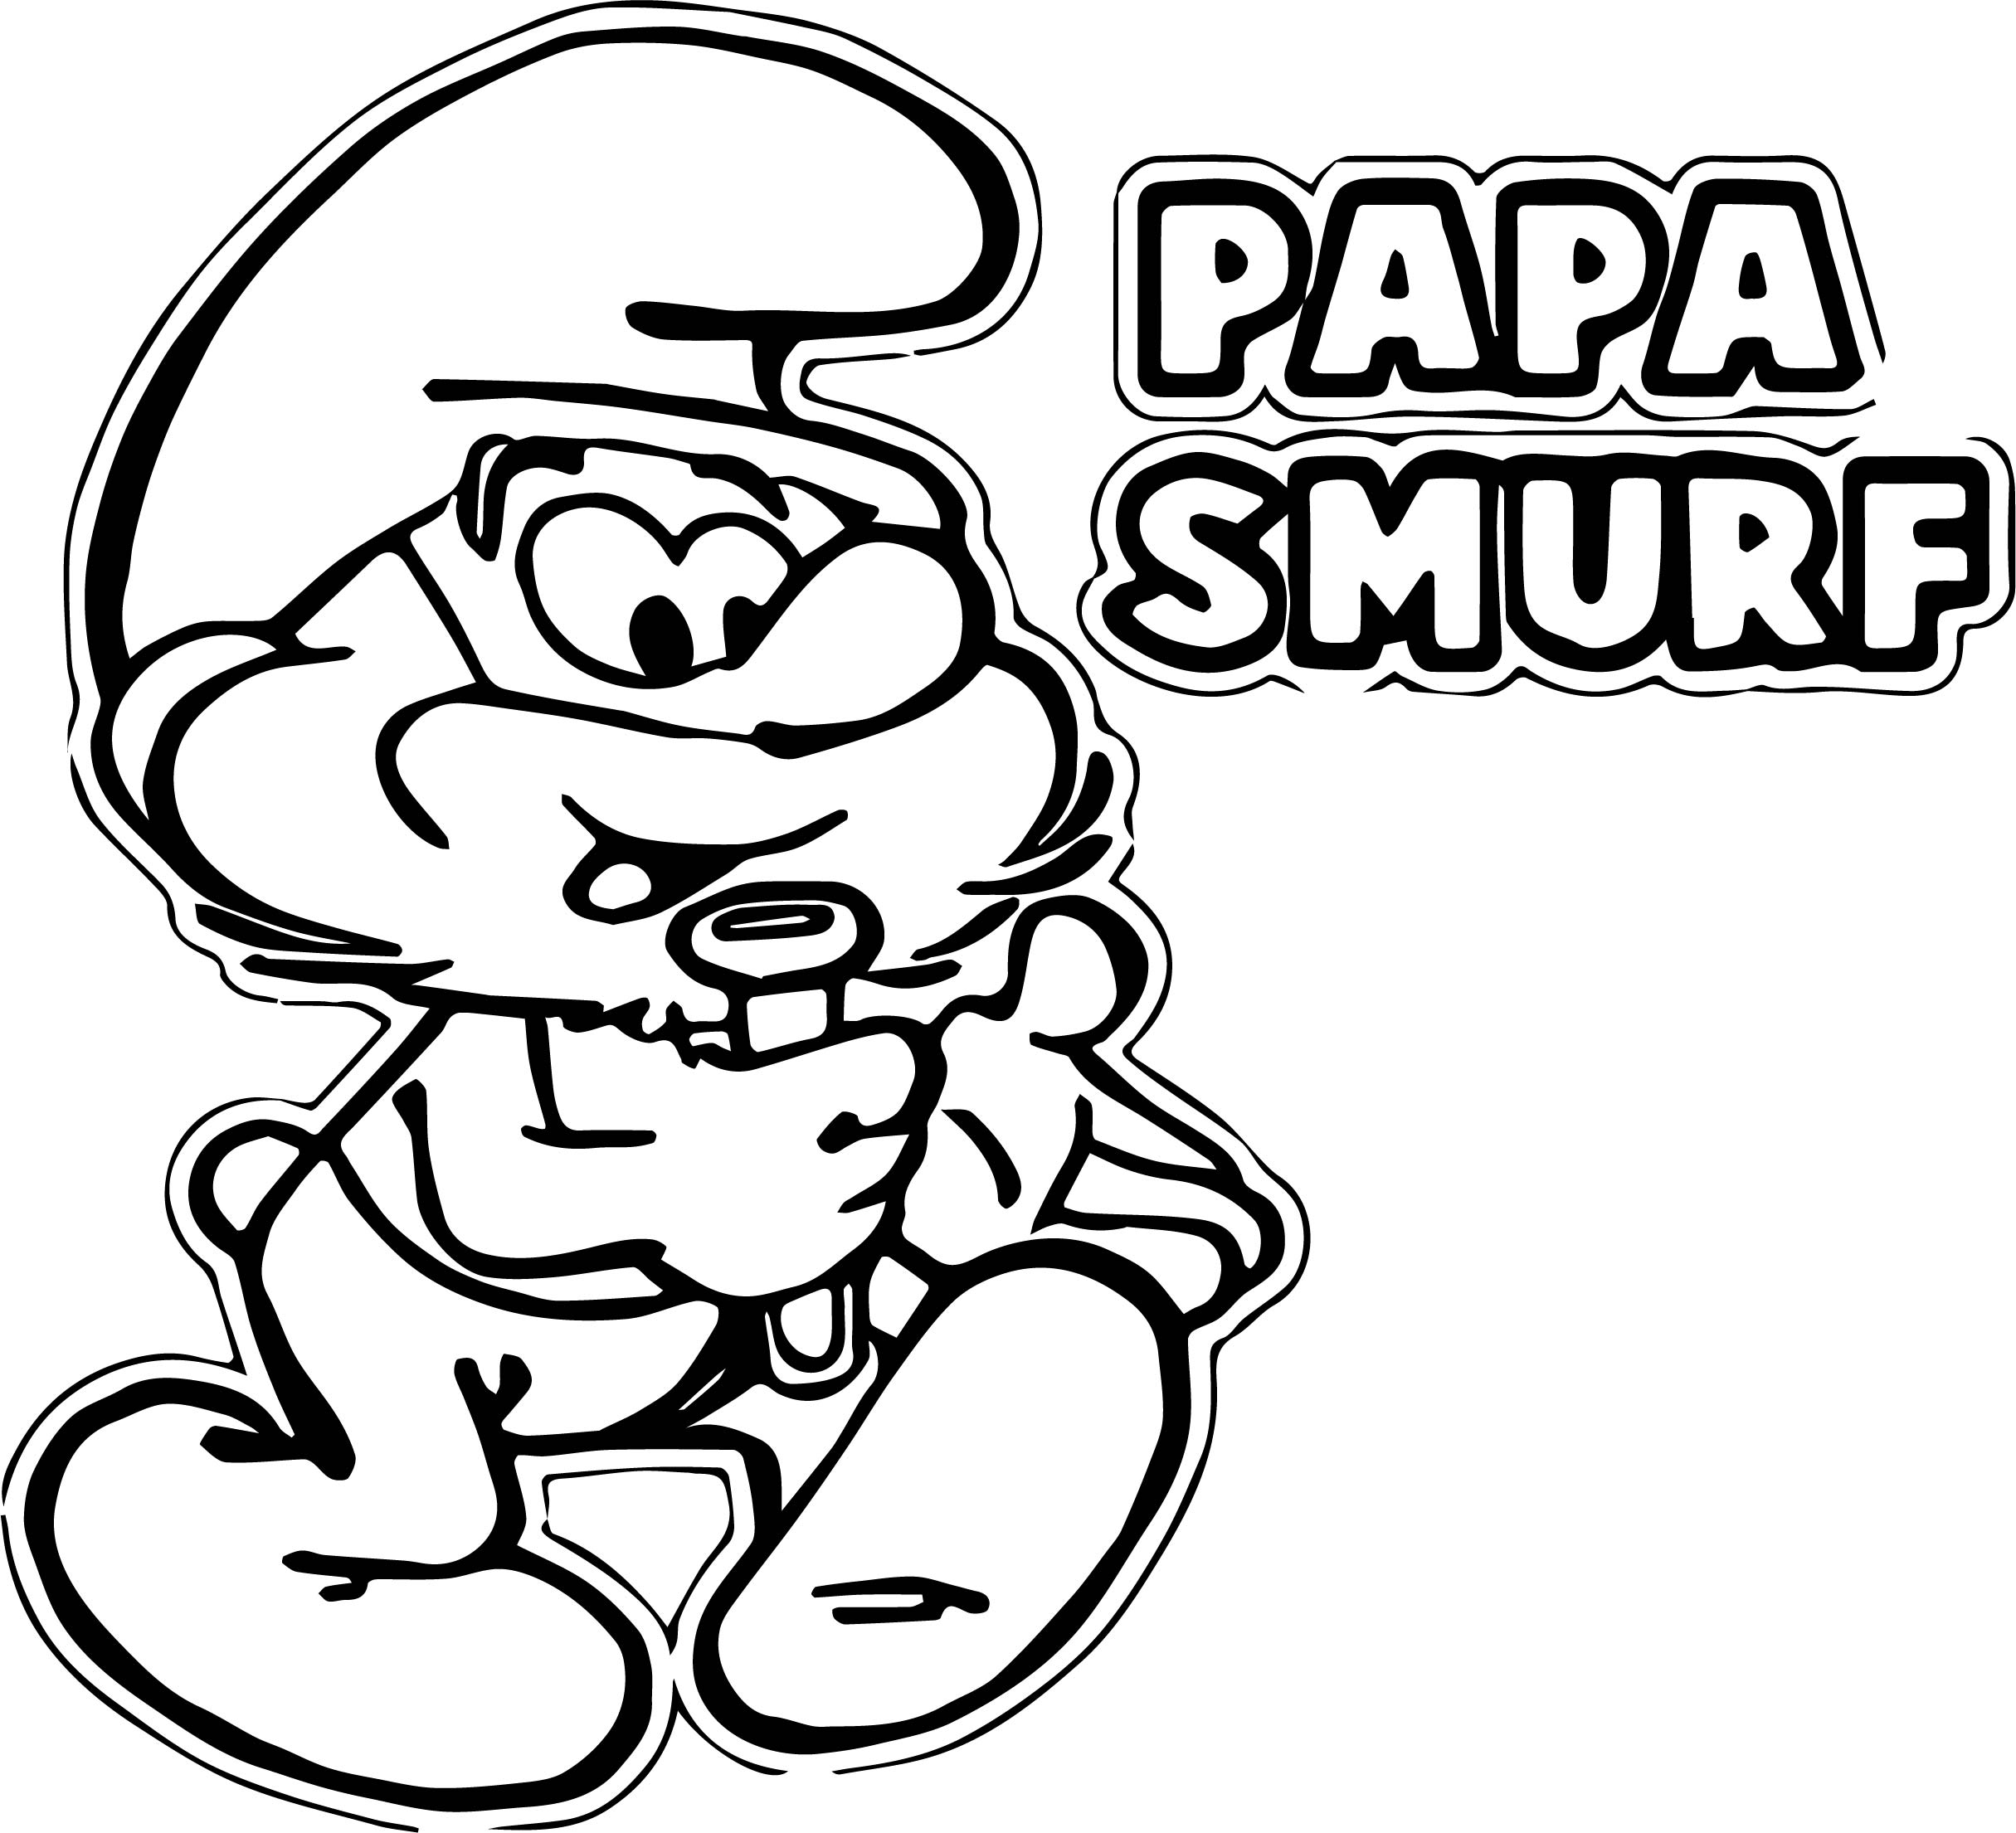 Papa Smurf Coloring Pages | Wecoloringpage.com